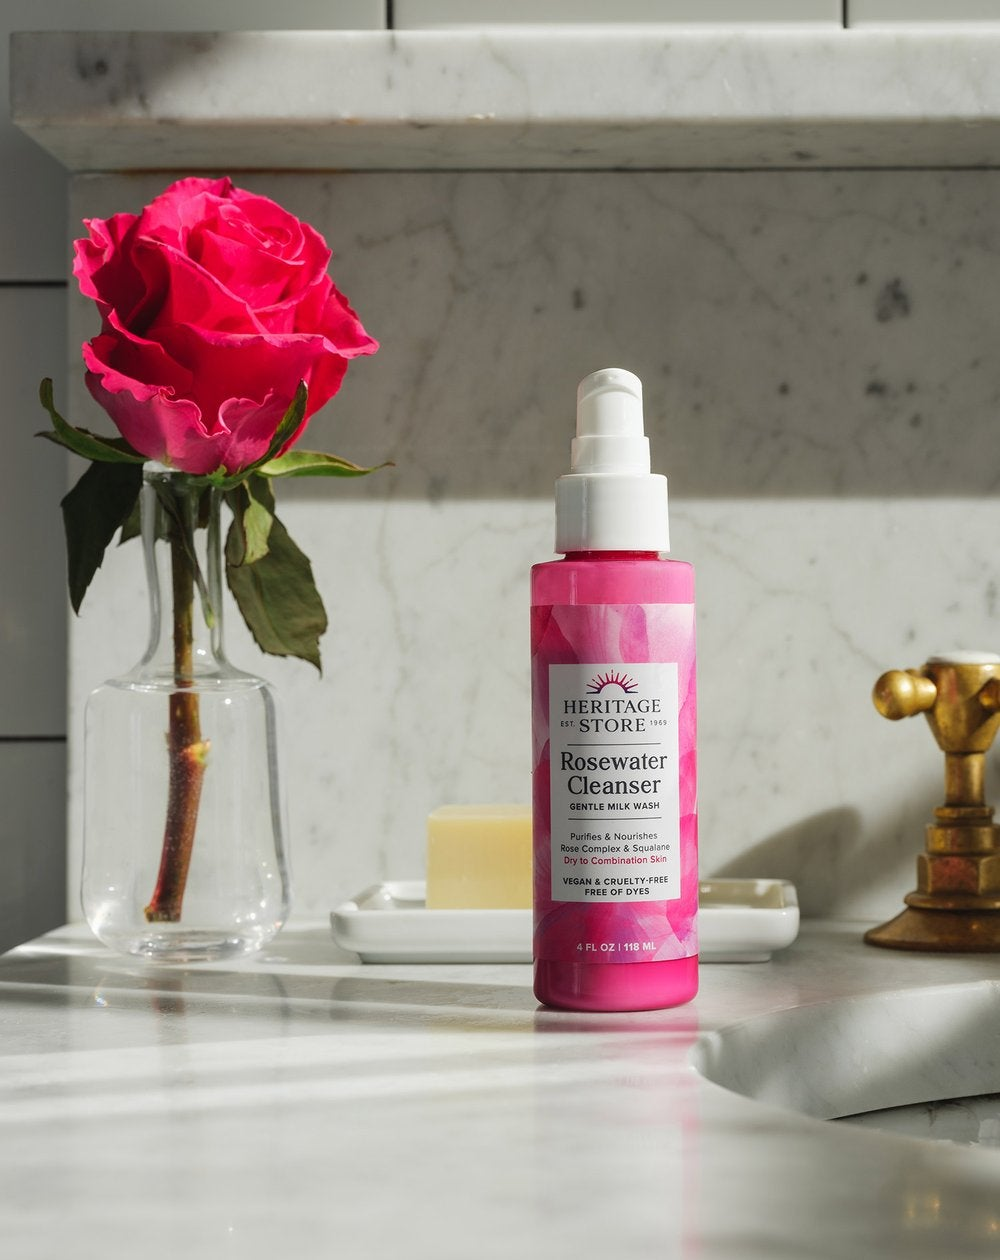 a pink bottle of rosewater cleanser